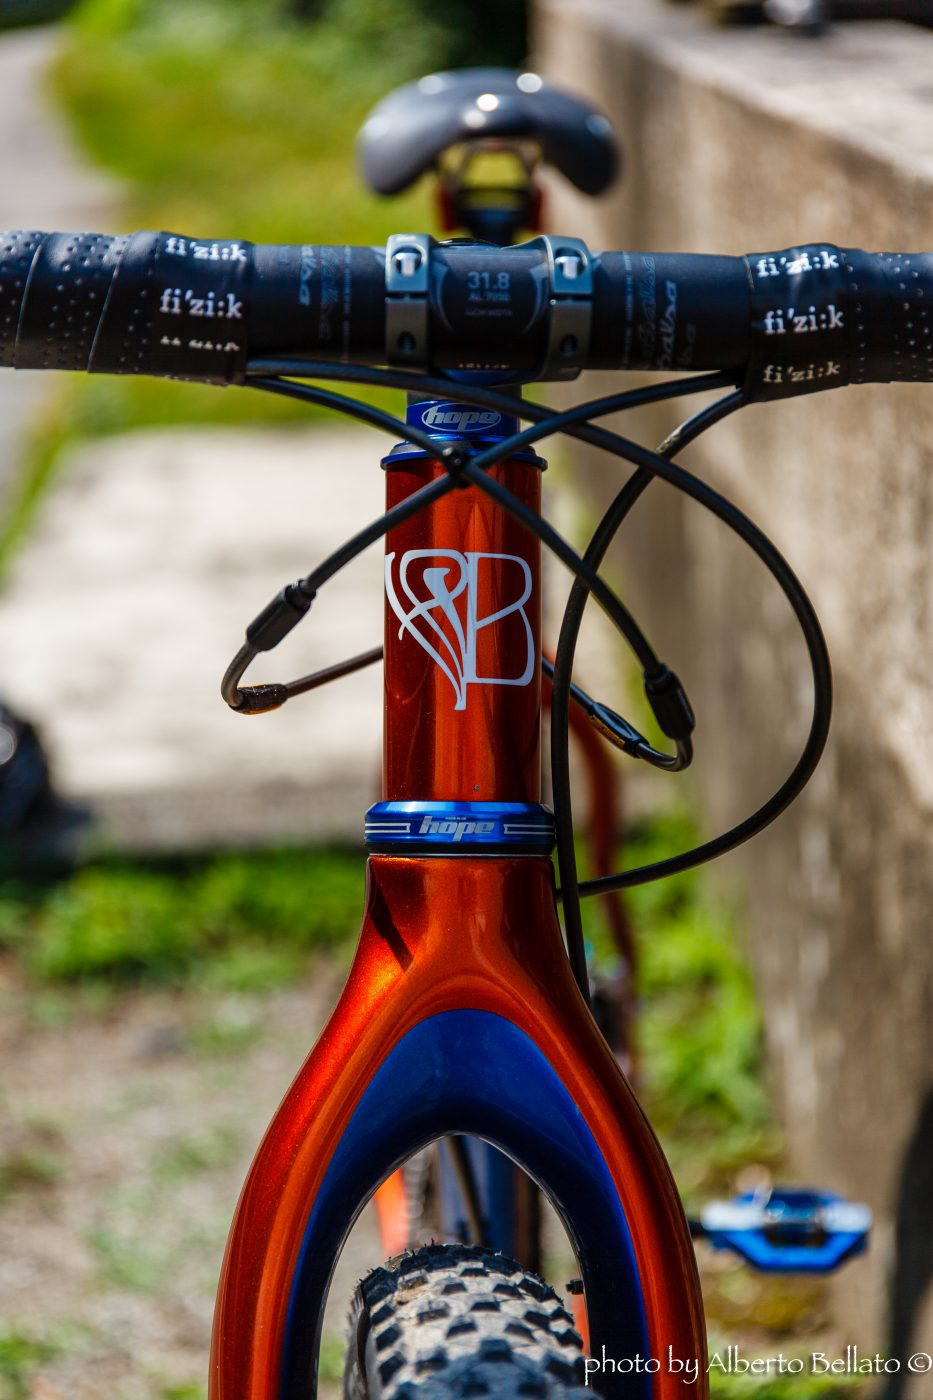 Divide OffRoad Gravel Steel Bice Bicycle tuscany trail hope